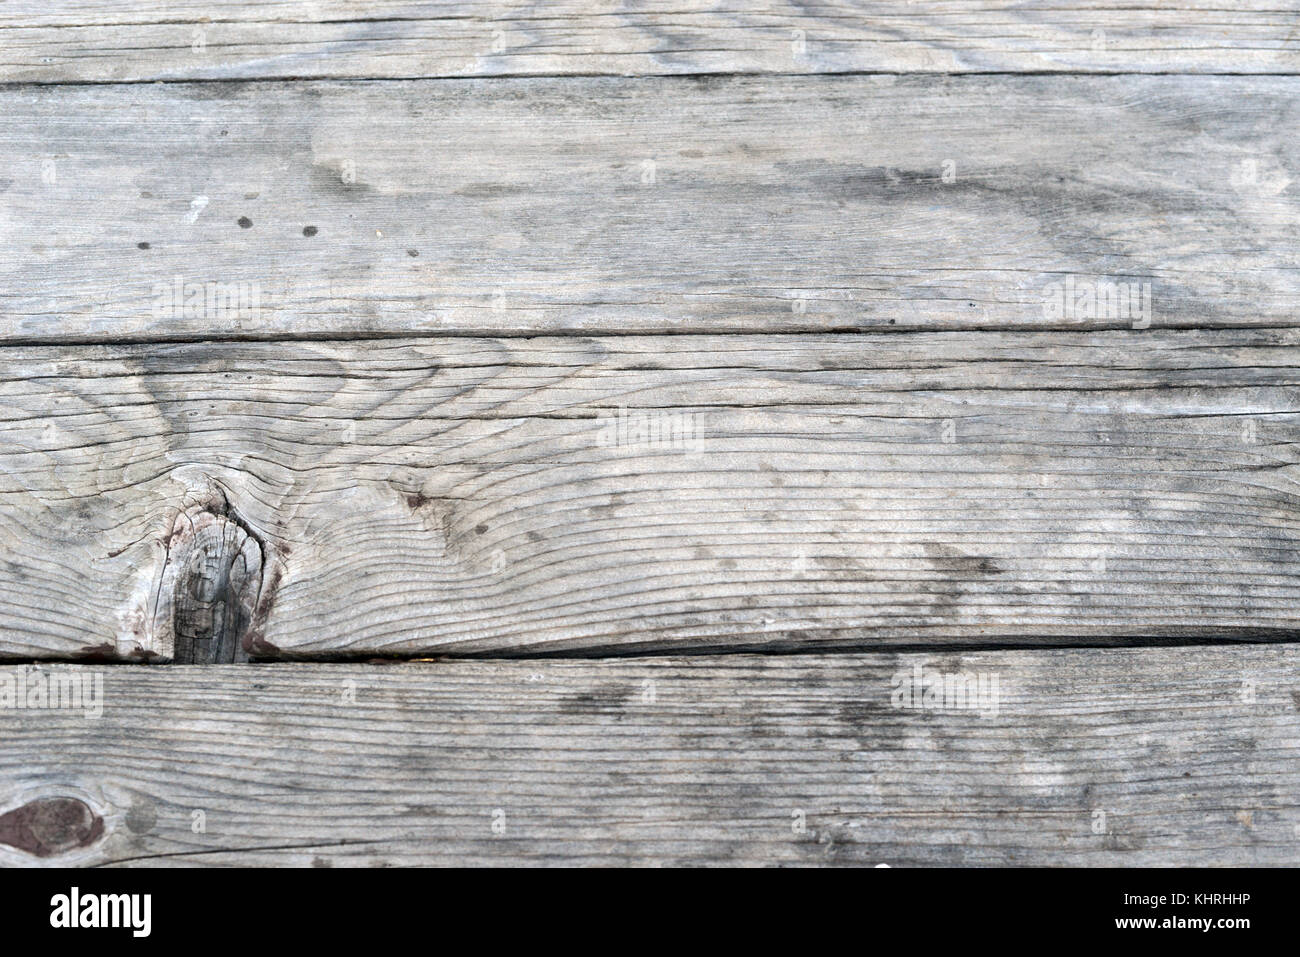 Old Antique Wood Planks Picnic Table - Stock Image